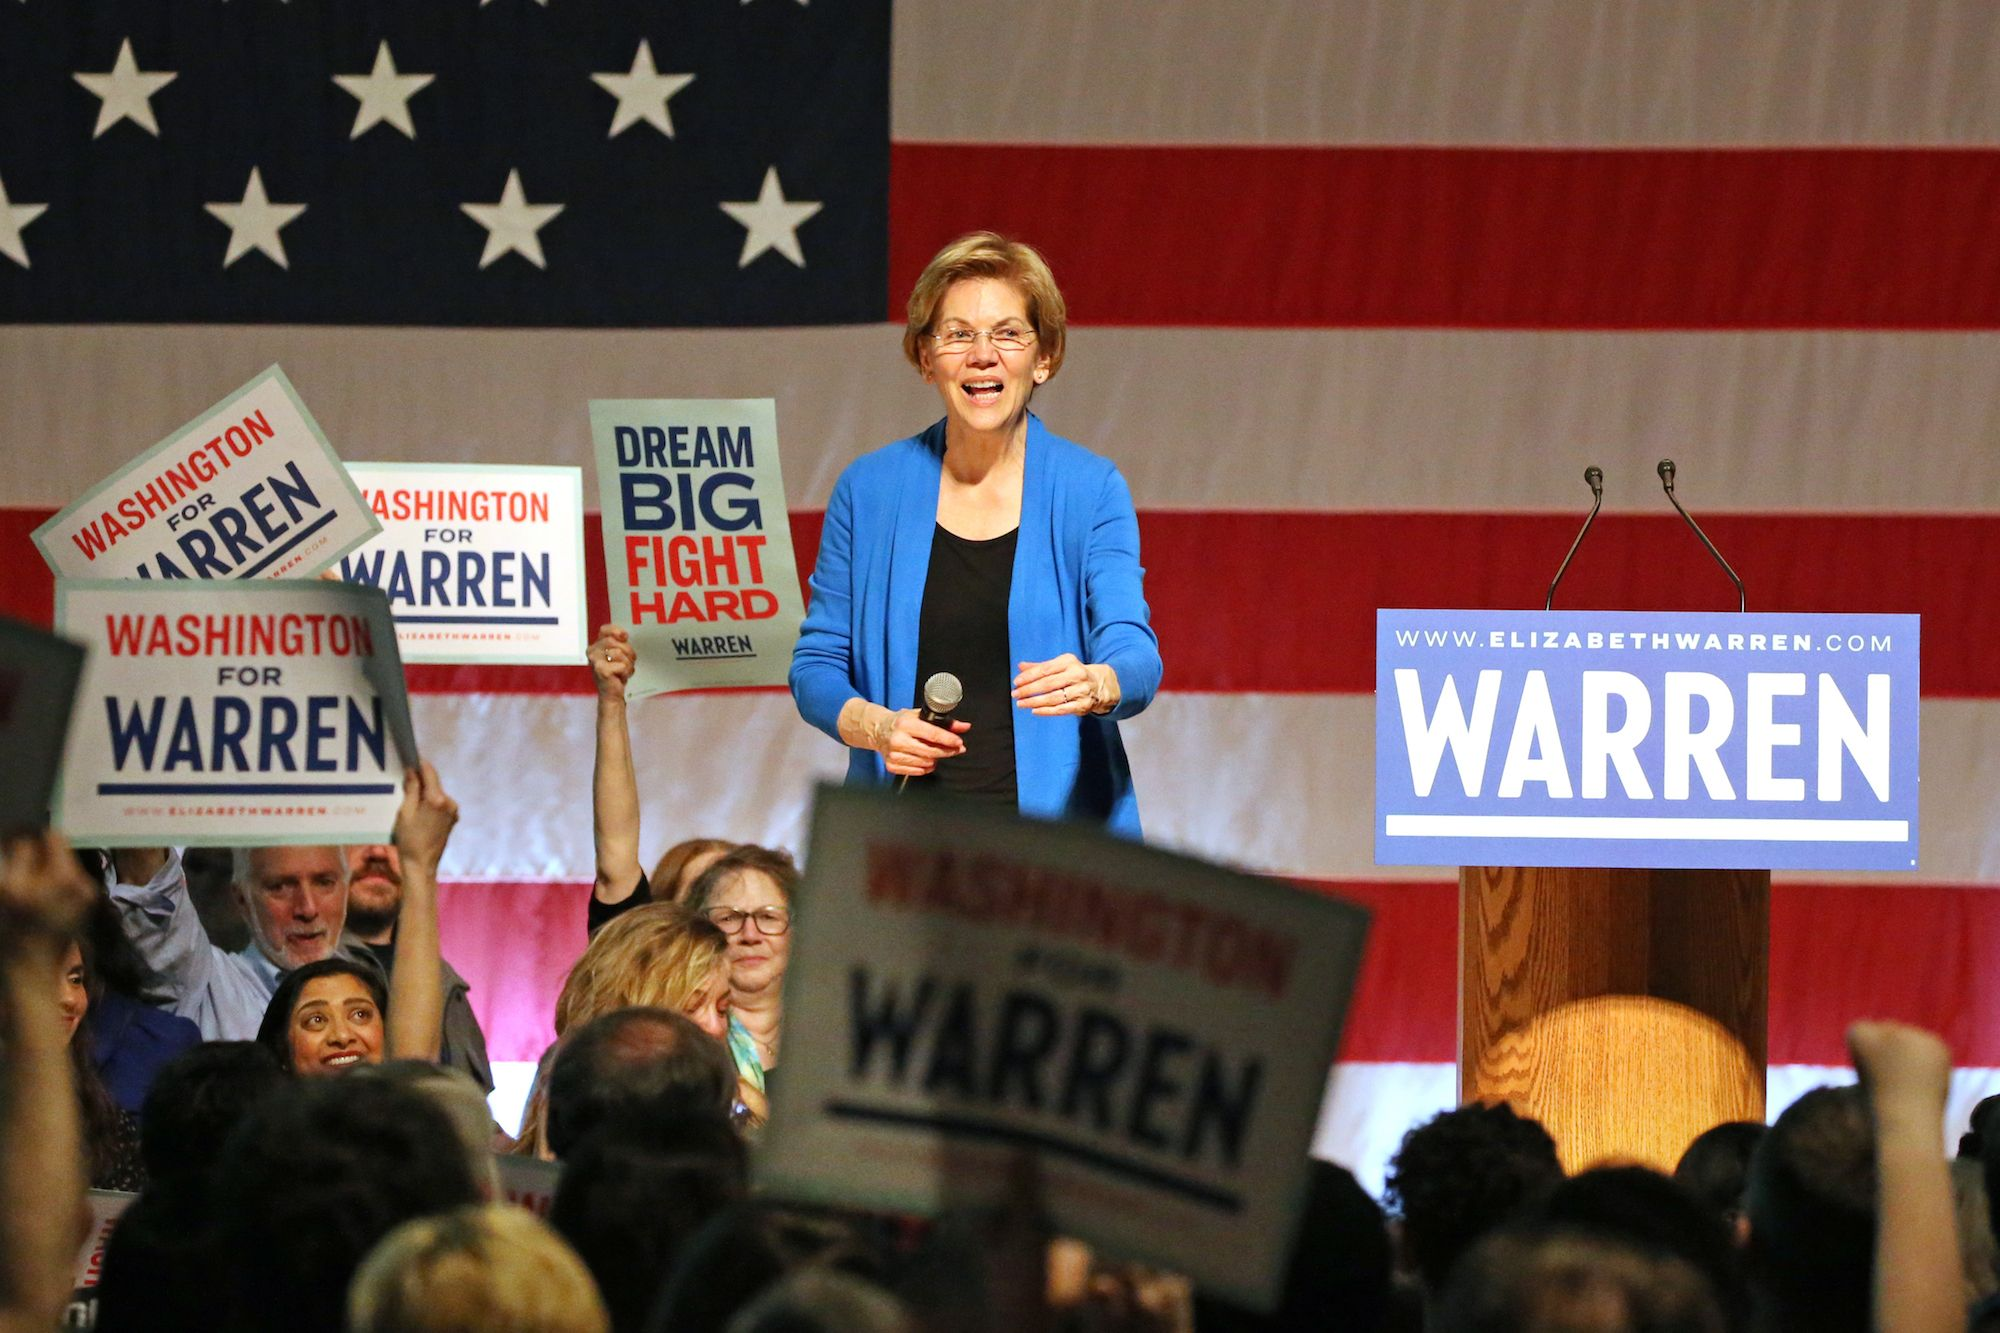 I Went Over to City Hall This Afternoon and Voted for Elizabeth Warren for President